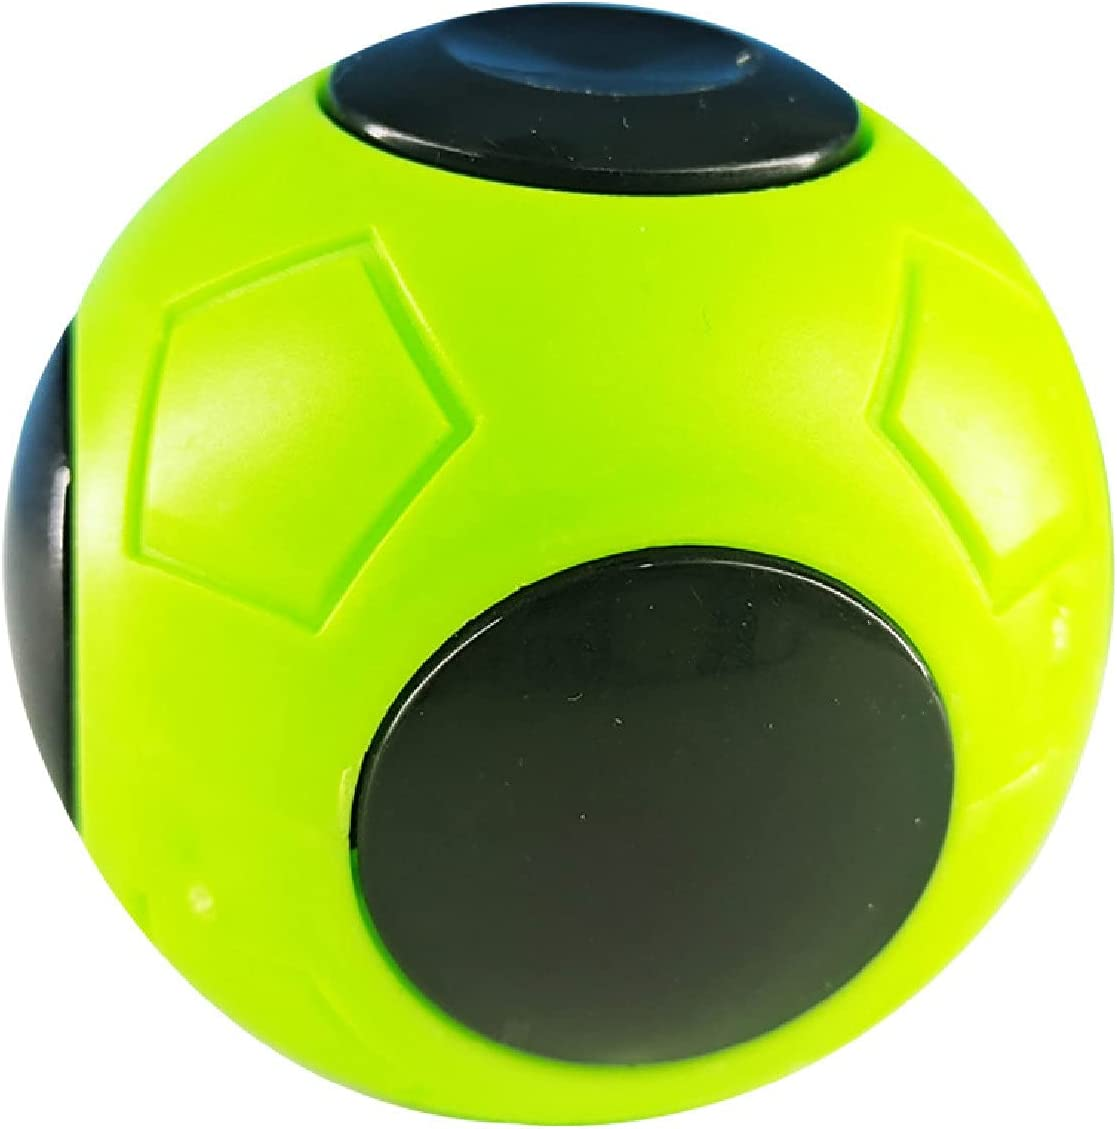 BYyushop Fingertip Football Opening large release sale Price reduction Simulatio Toy